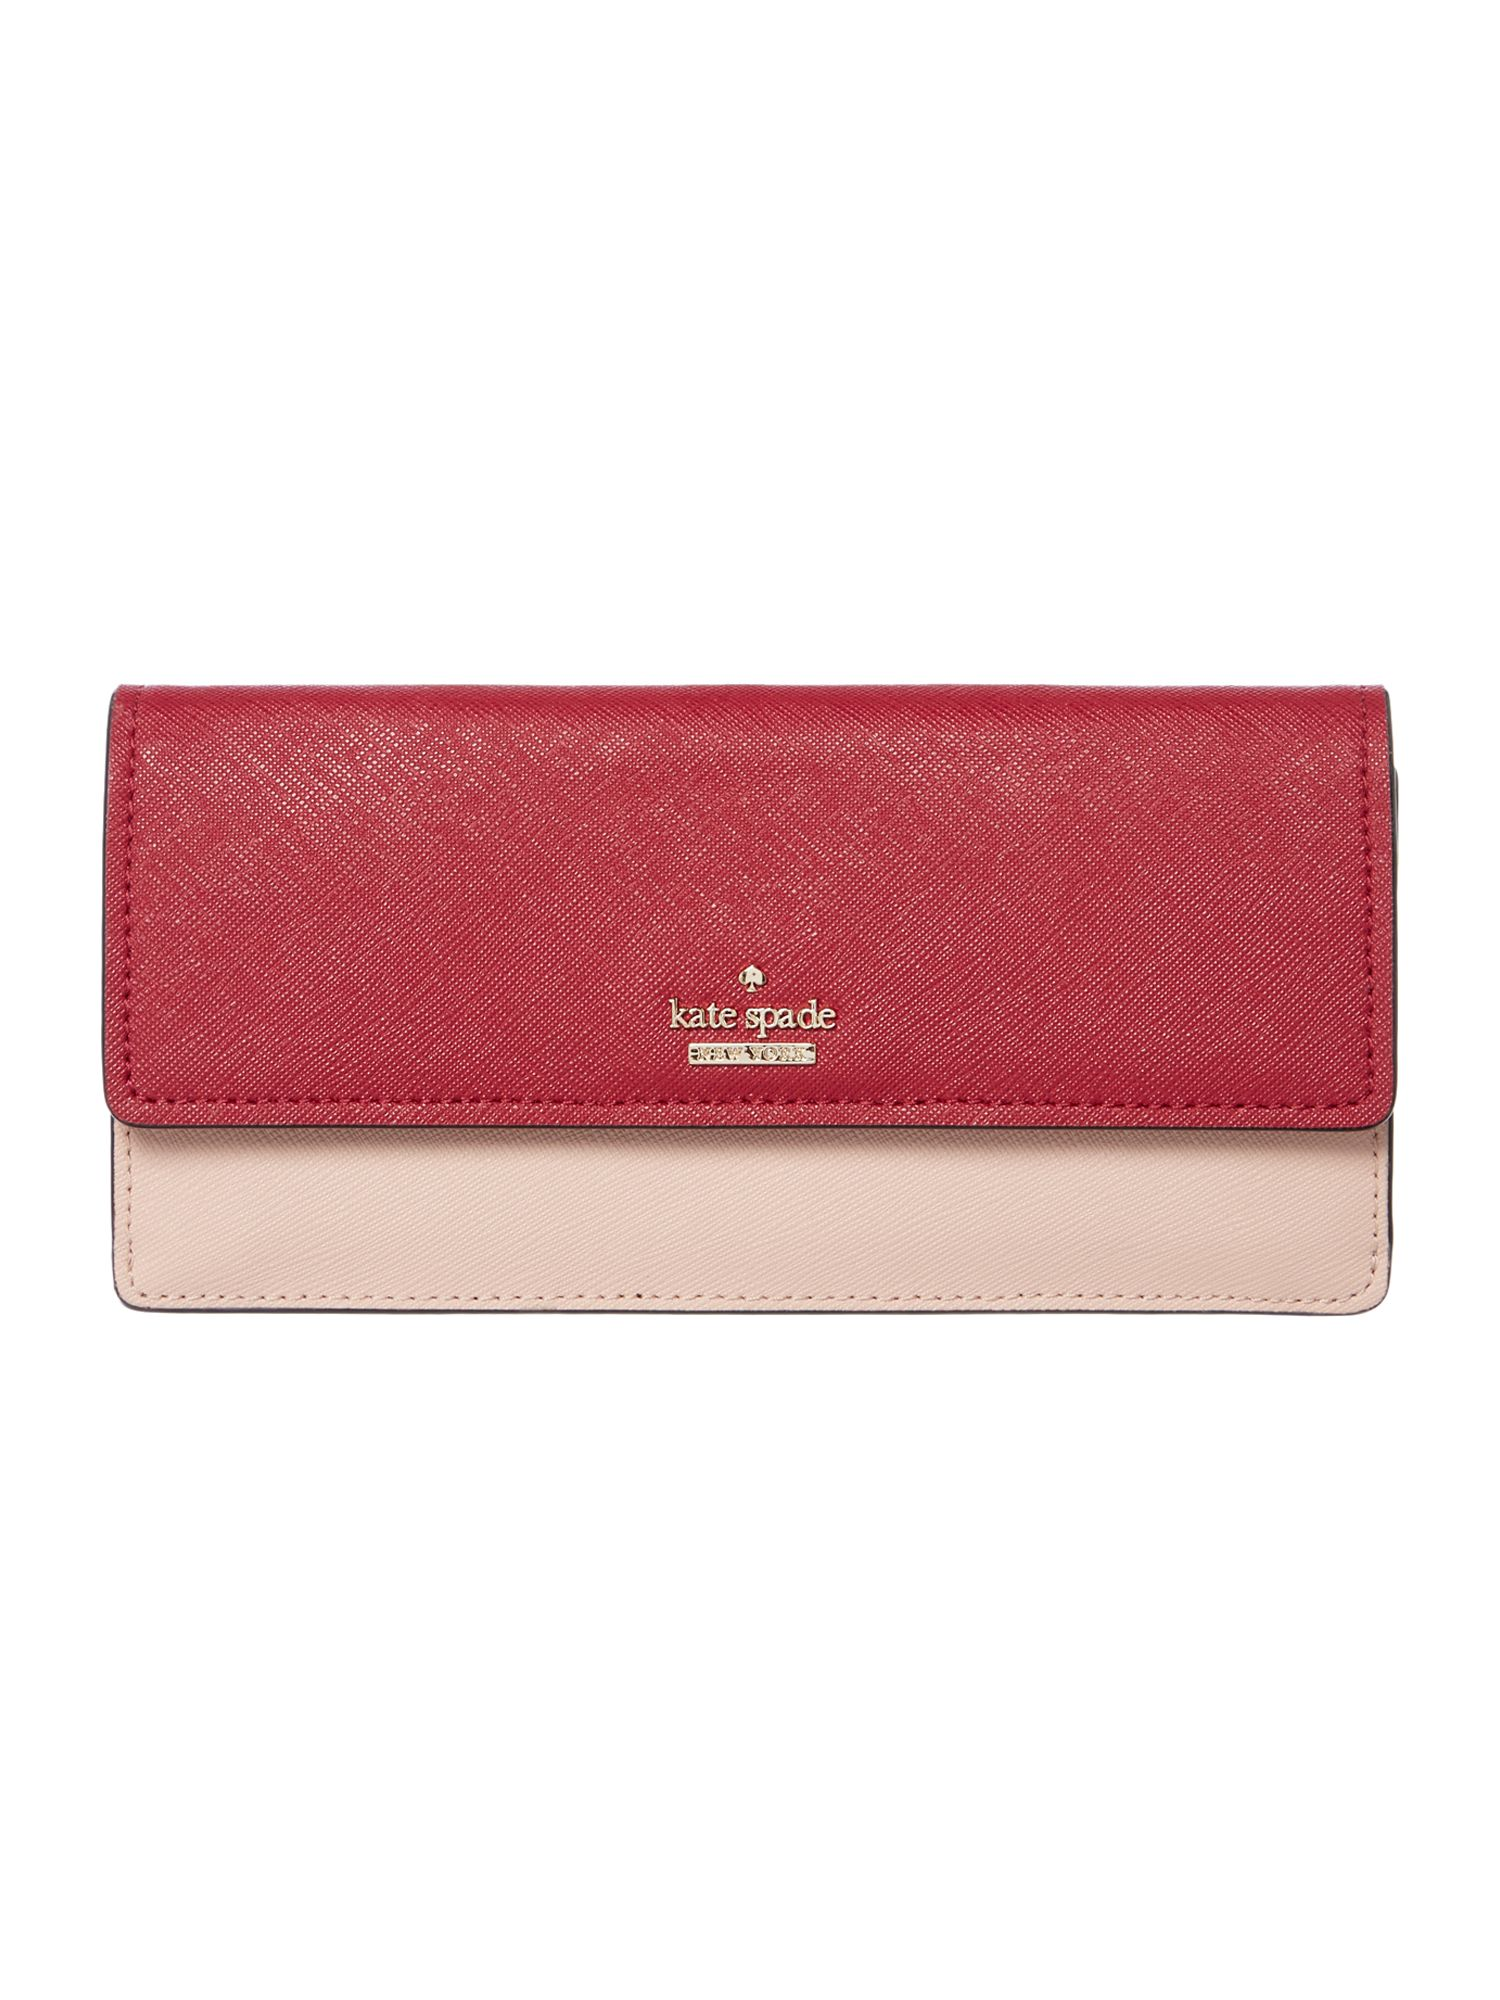 Kate Spade New York Cameron street alli flapover, Red